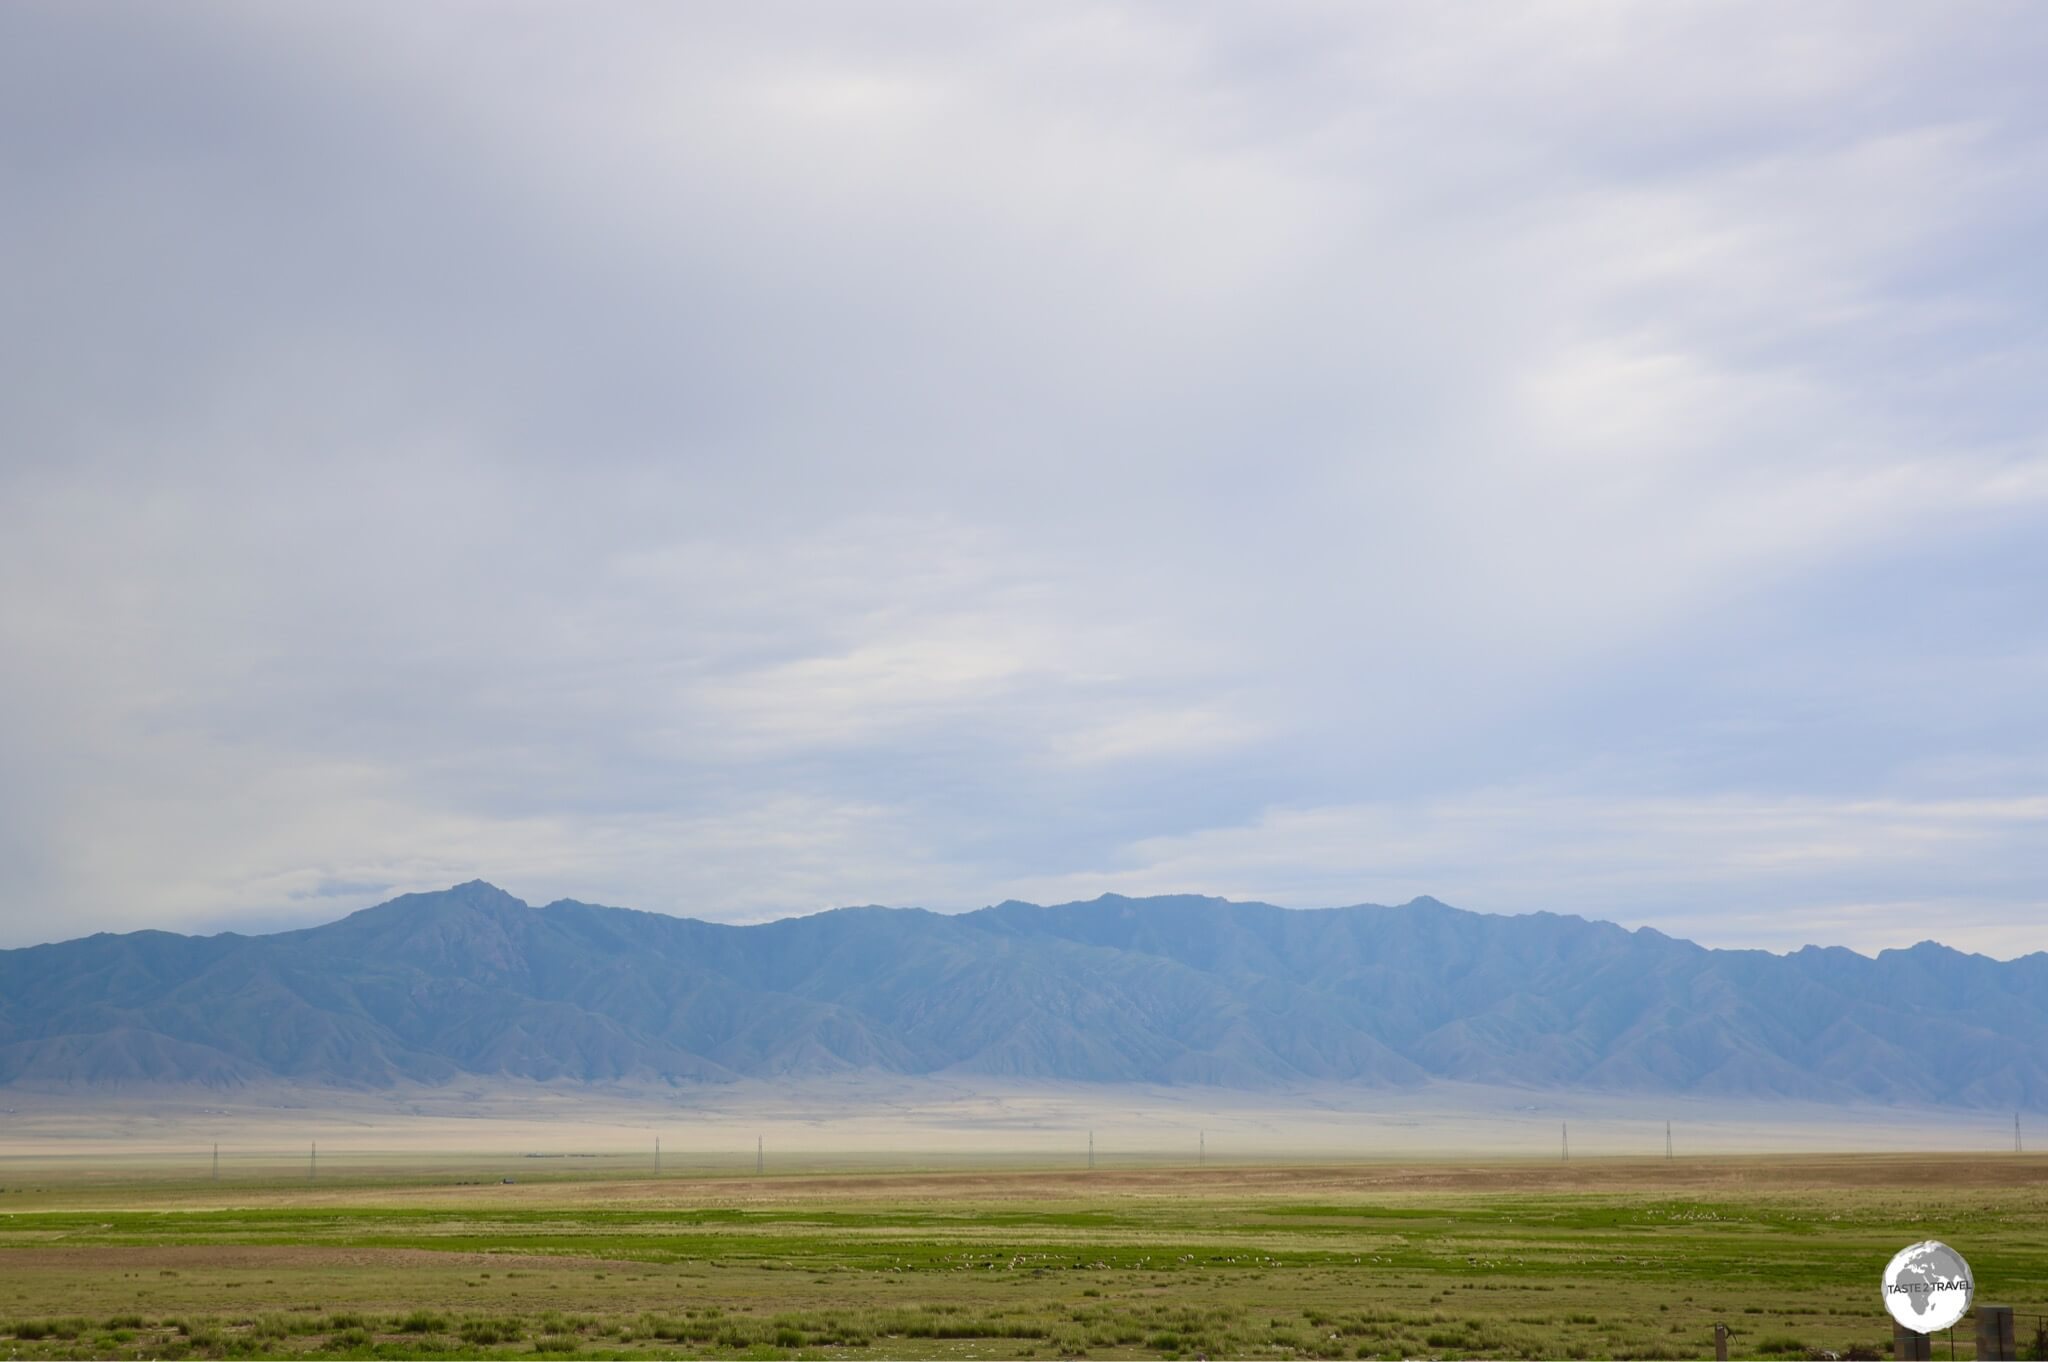 Wide open plains meet the towering Tien Shan mountains near Almaty,